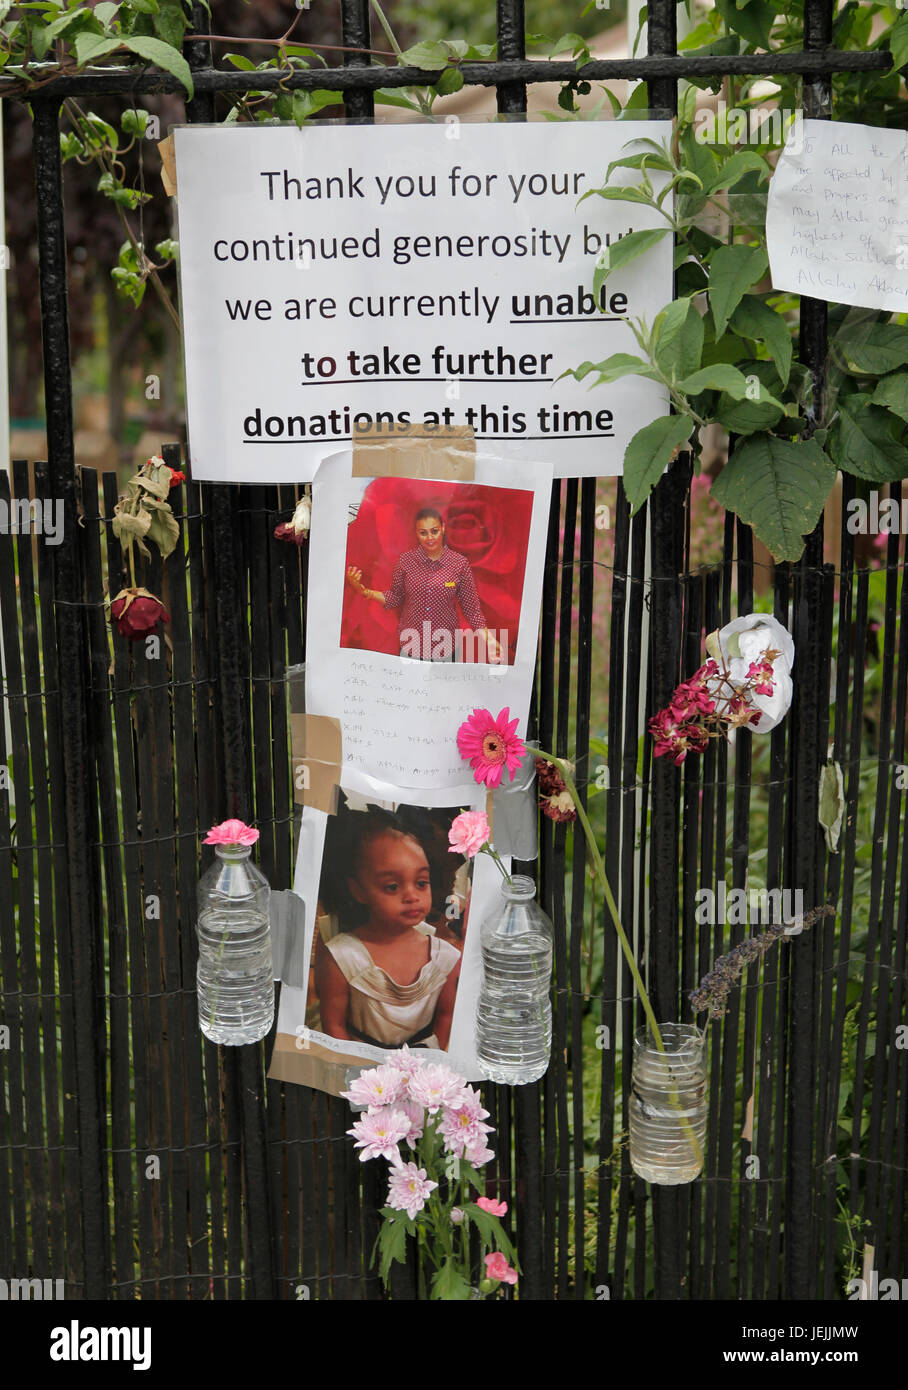 Grenfell tower block fire - Stock Image